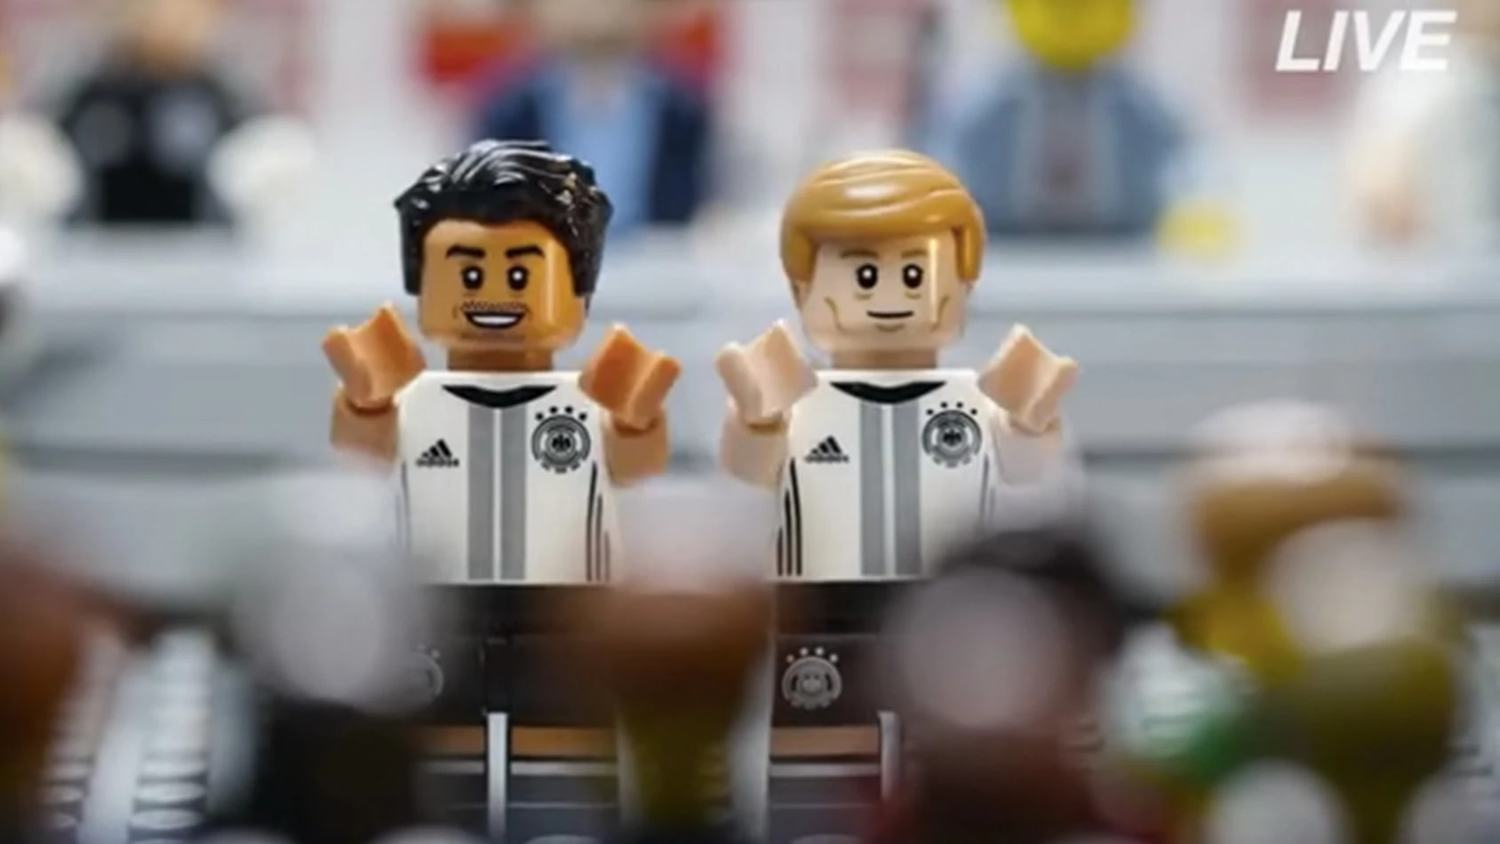 Lego Launch German National Team Figure Collection including Ozil, Kroos & Muller